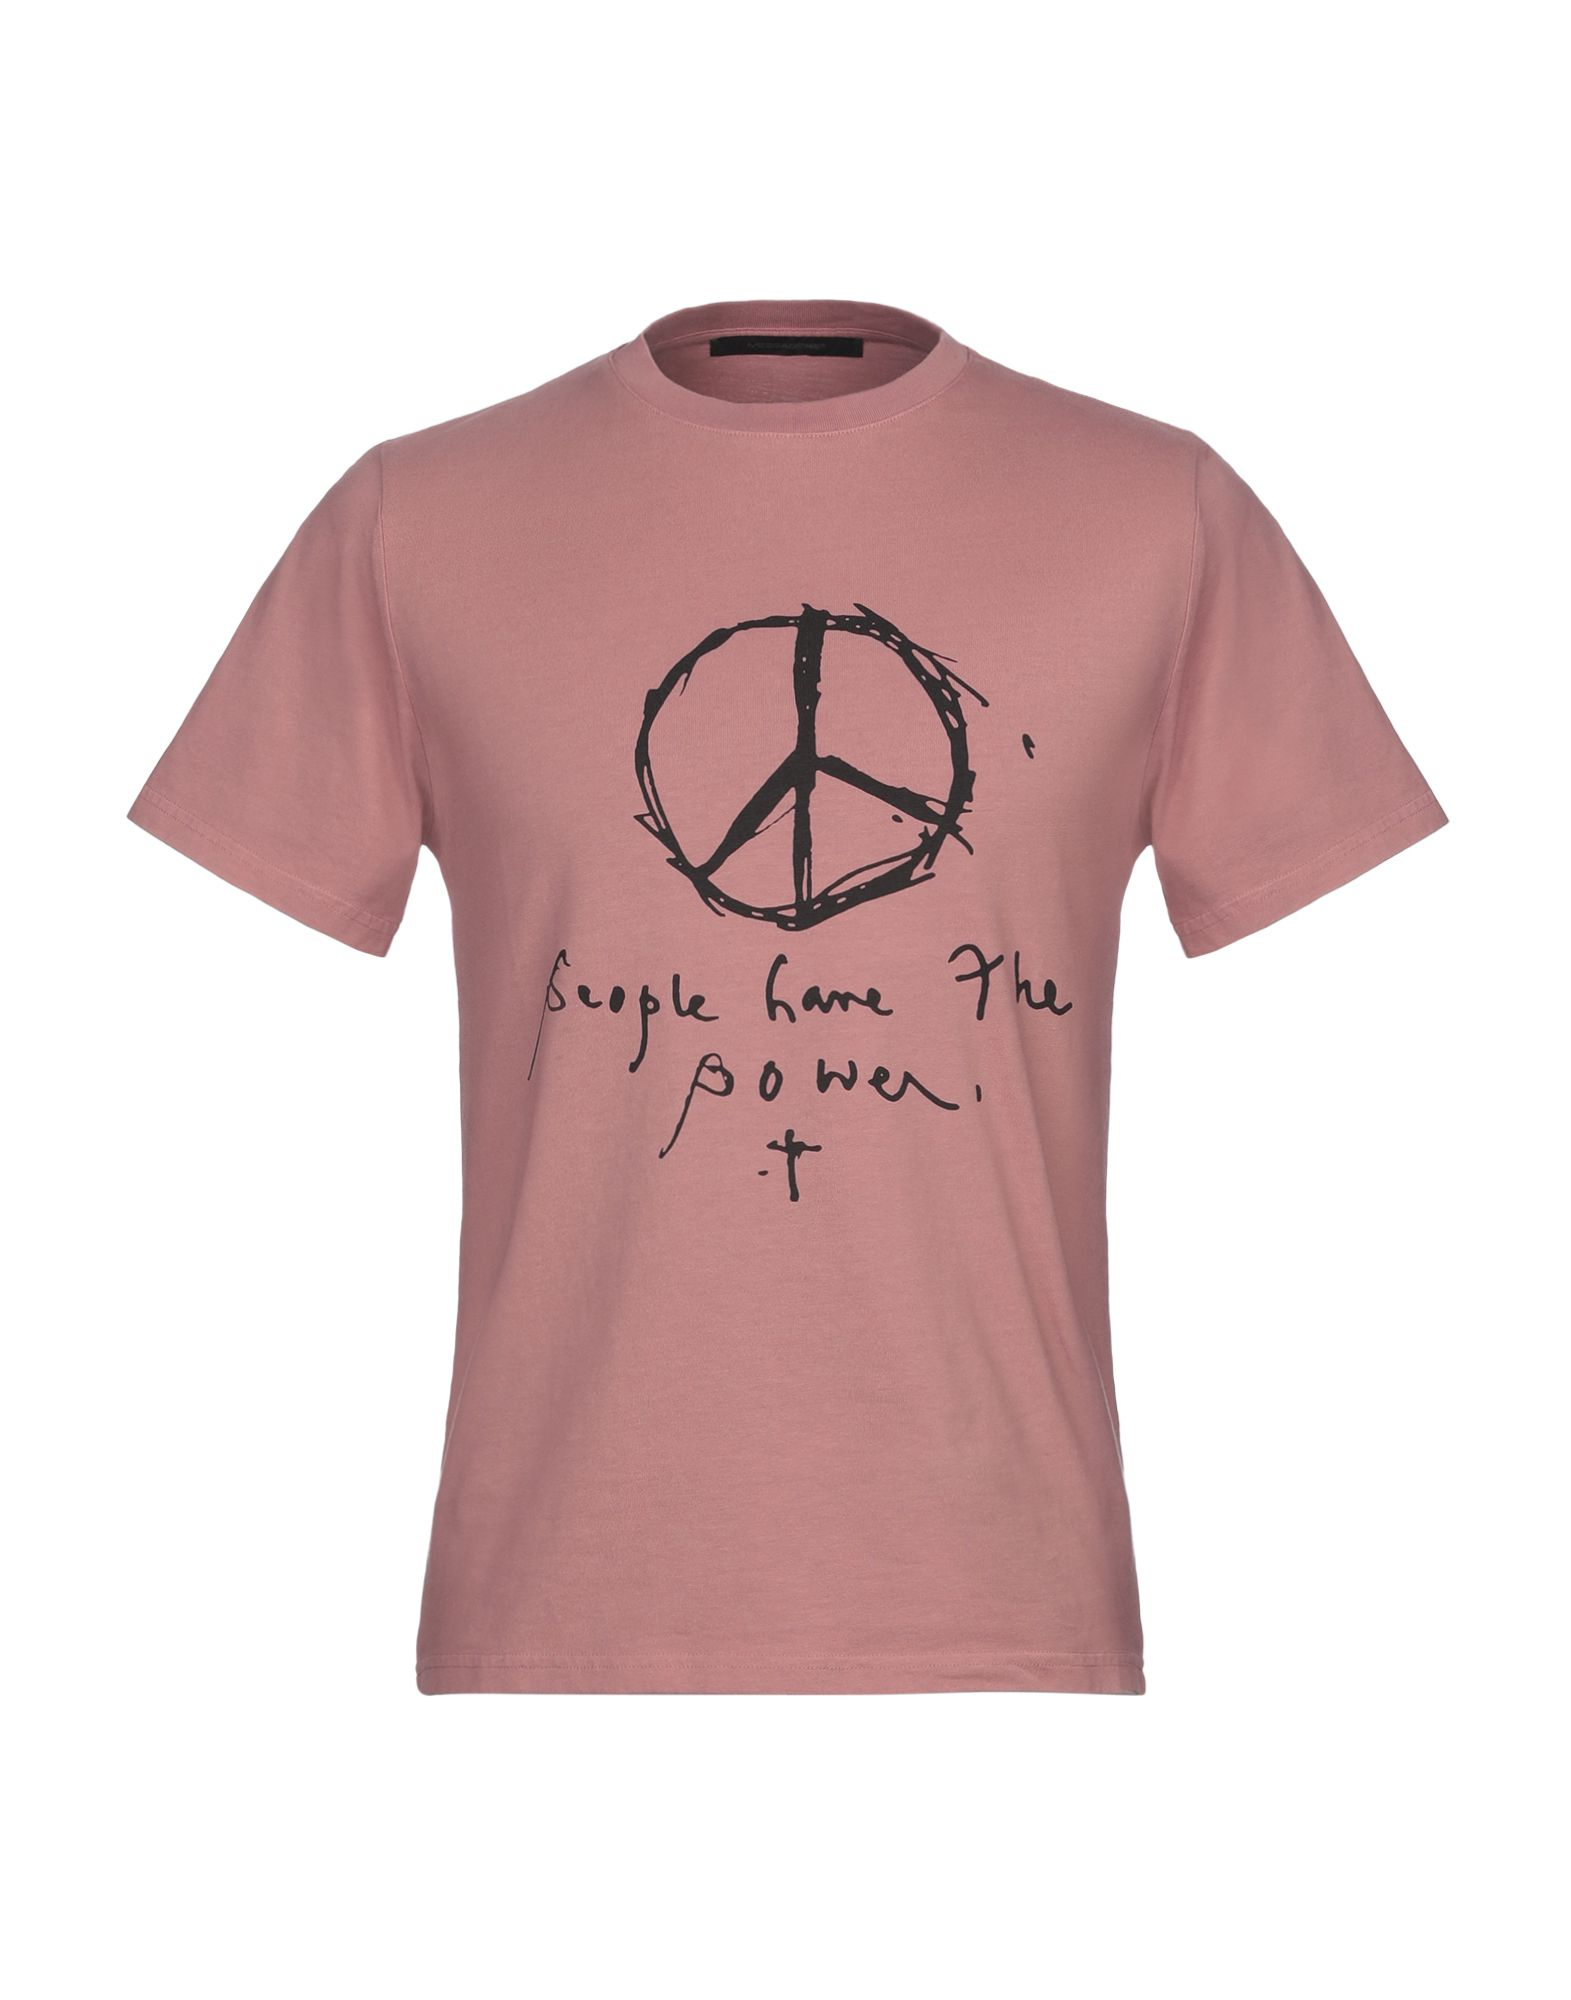 T-Shirt Messagerie herren - 12334310PX